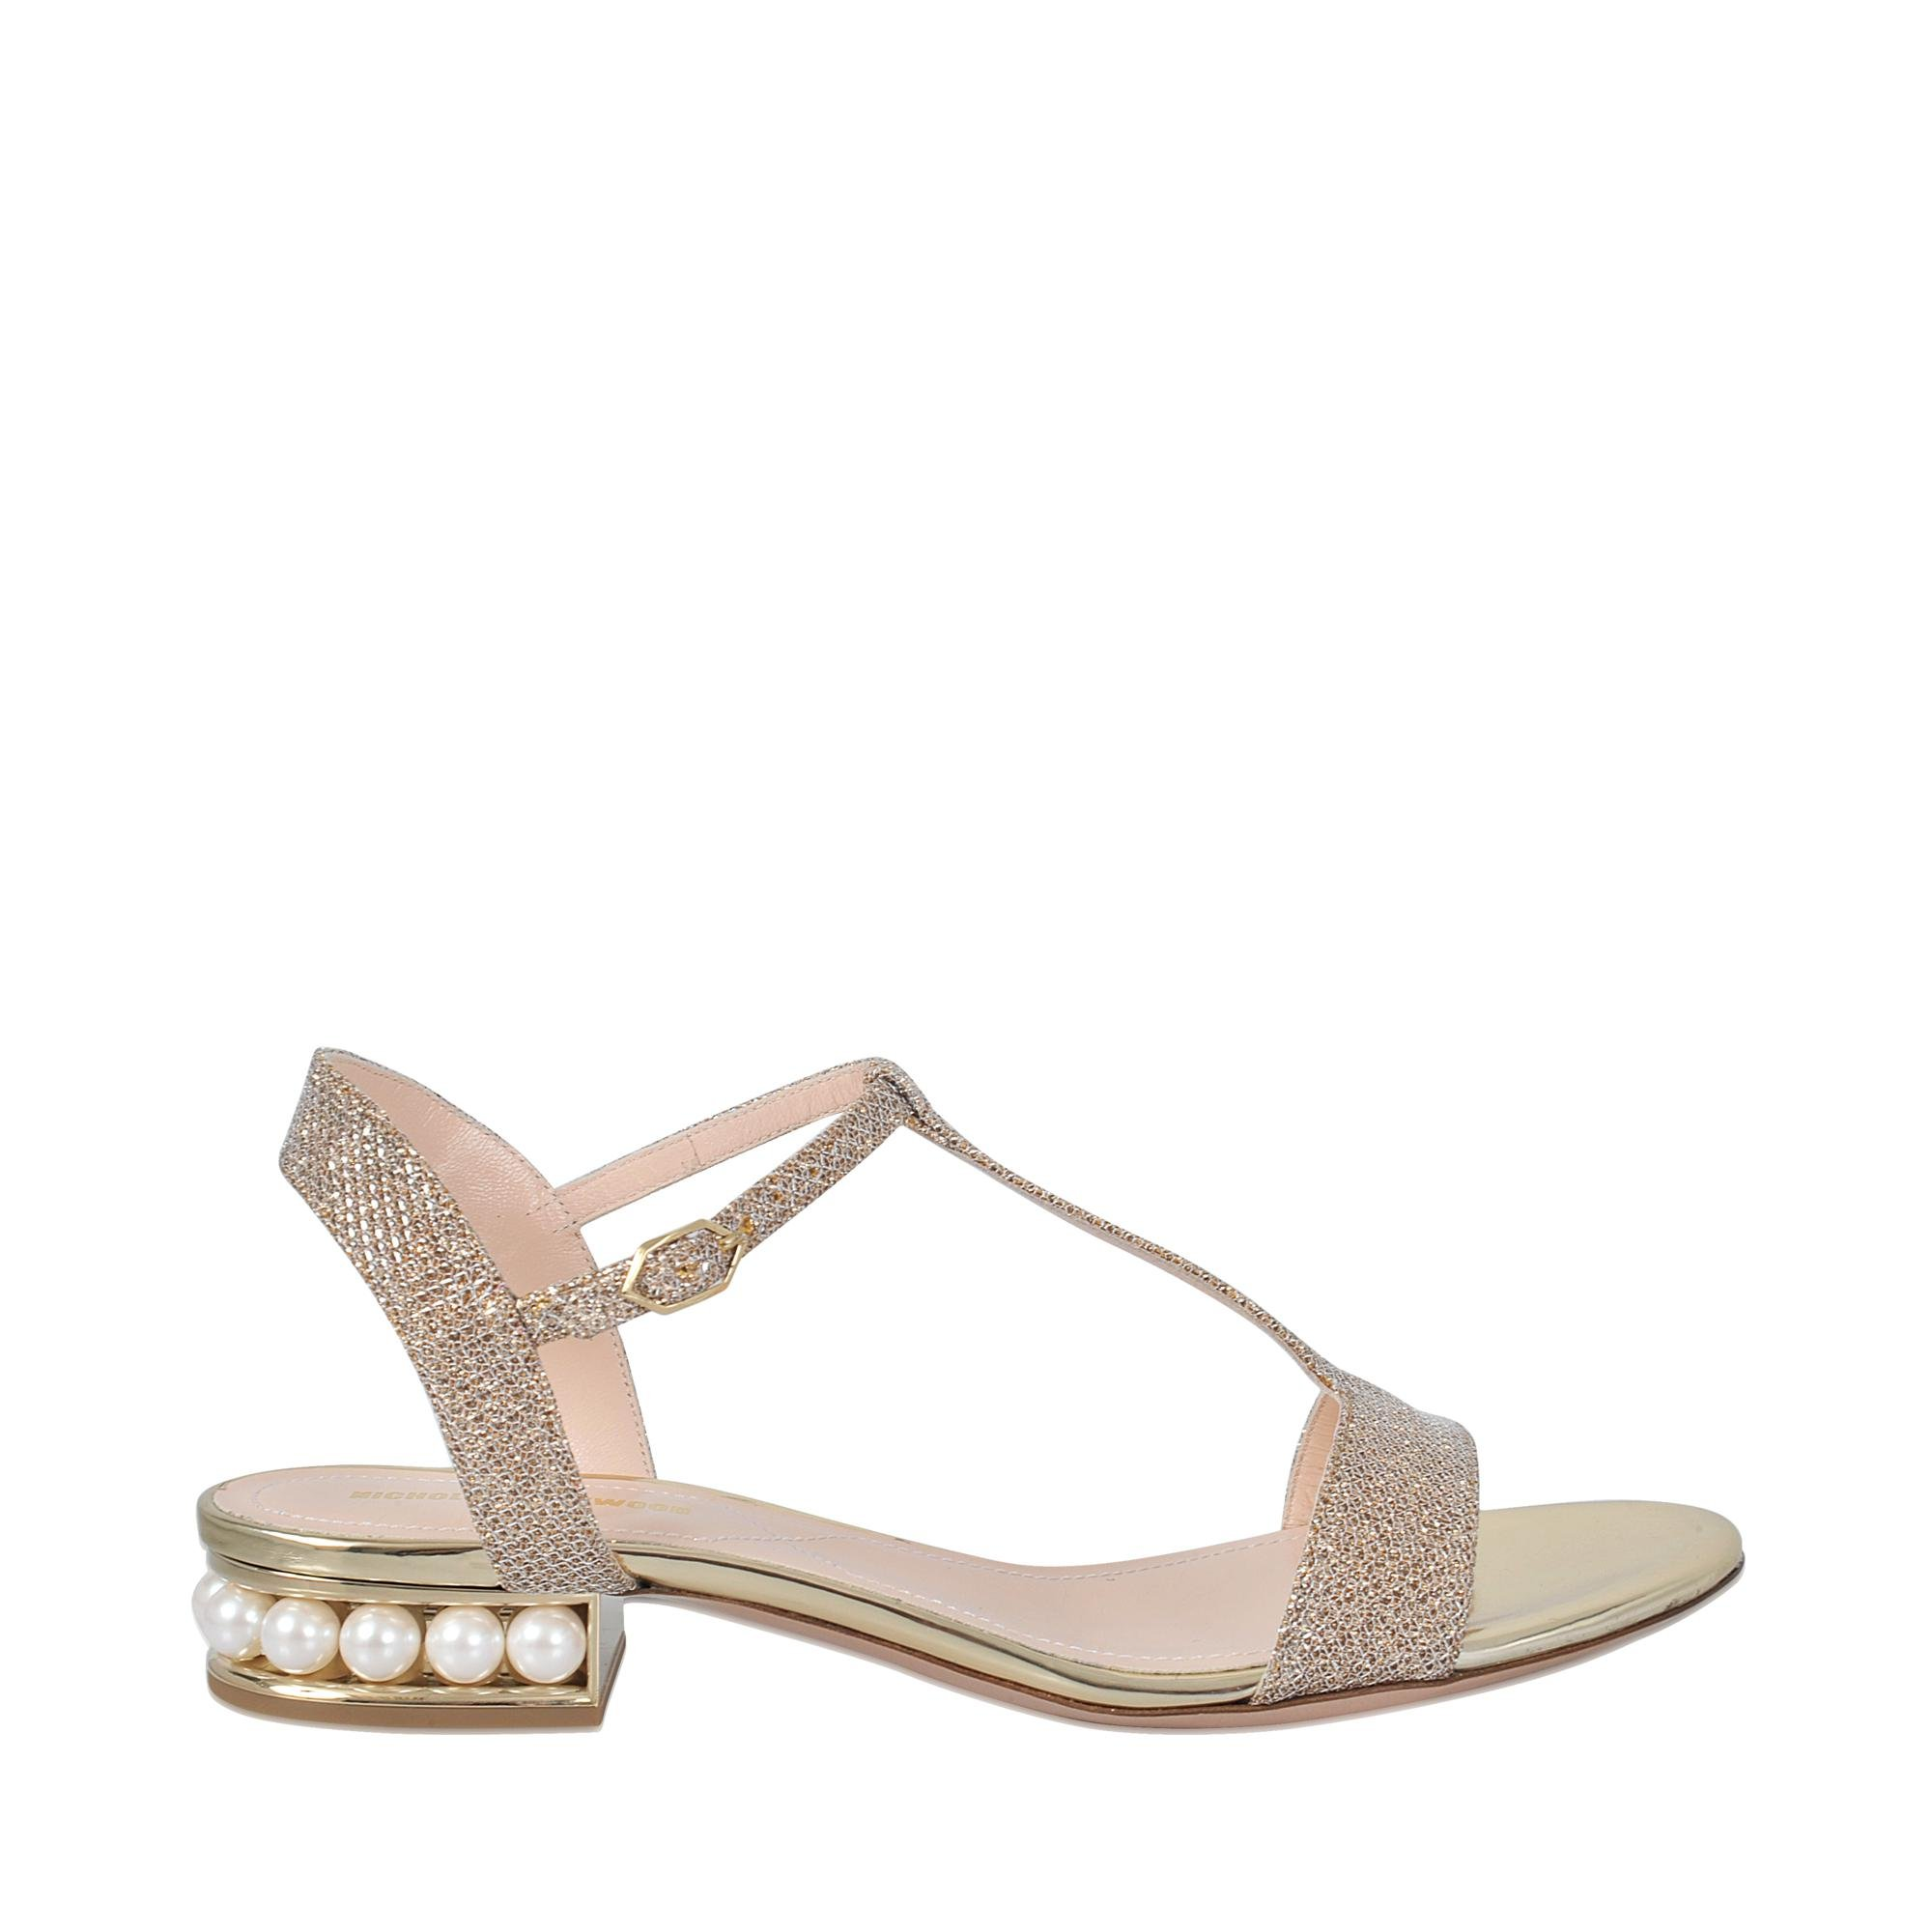 Sale Amazing Price Casati Pearl T-Bar sandals - Metallic Nicholas Kirkwood The Cheapest Sale Online Marketable Online LsmKj